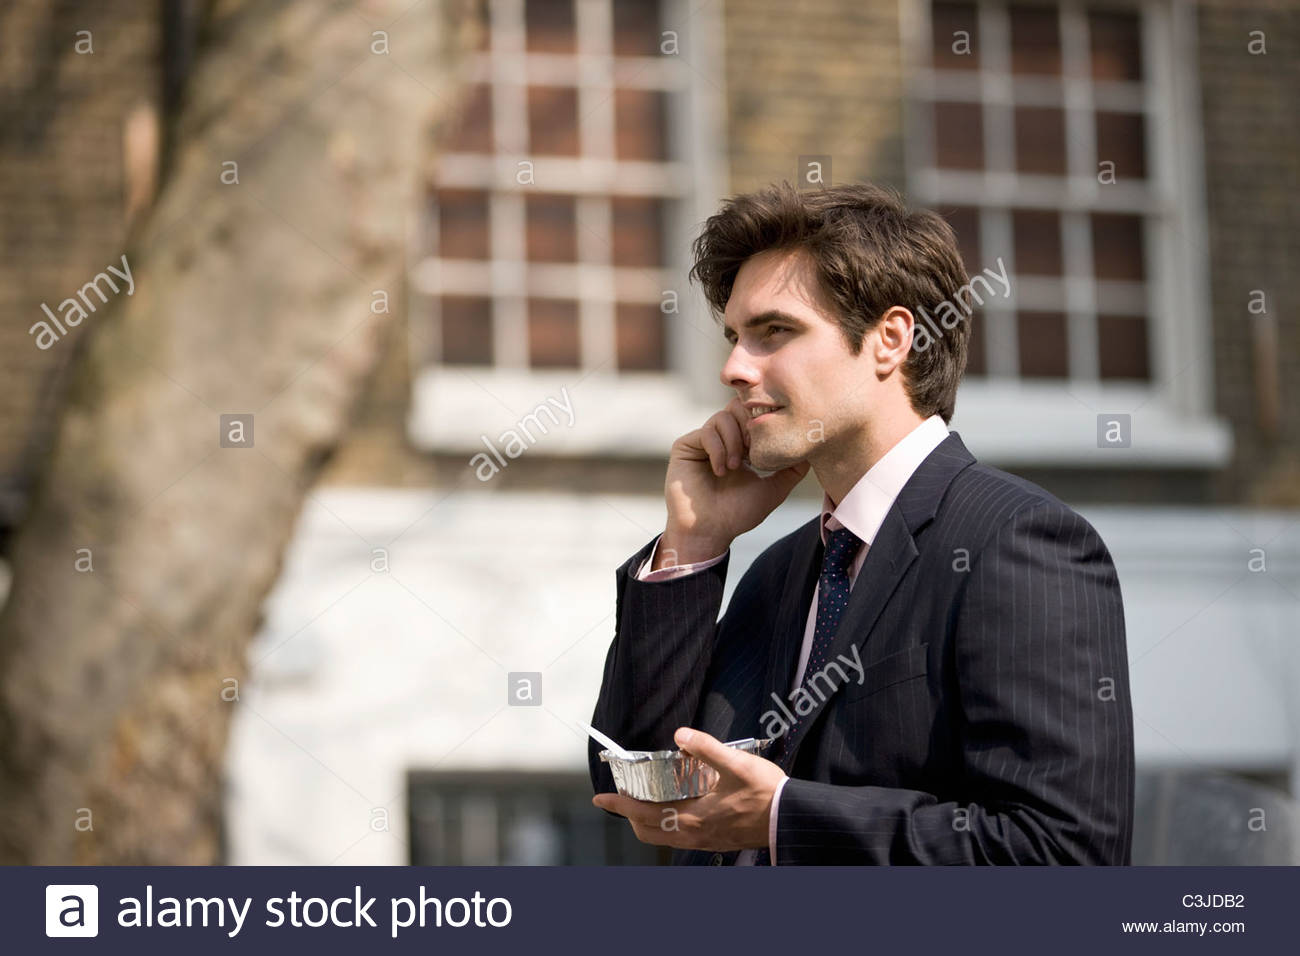 A businessman talking on his mobile phone, eating take-away food - Stock Image